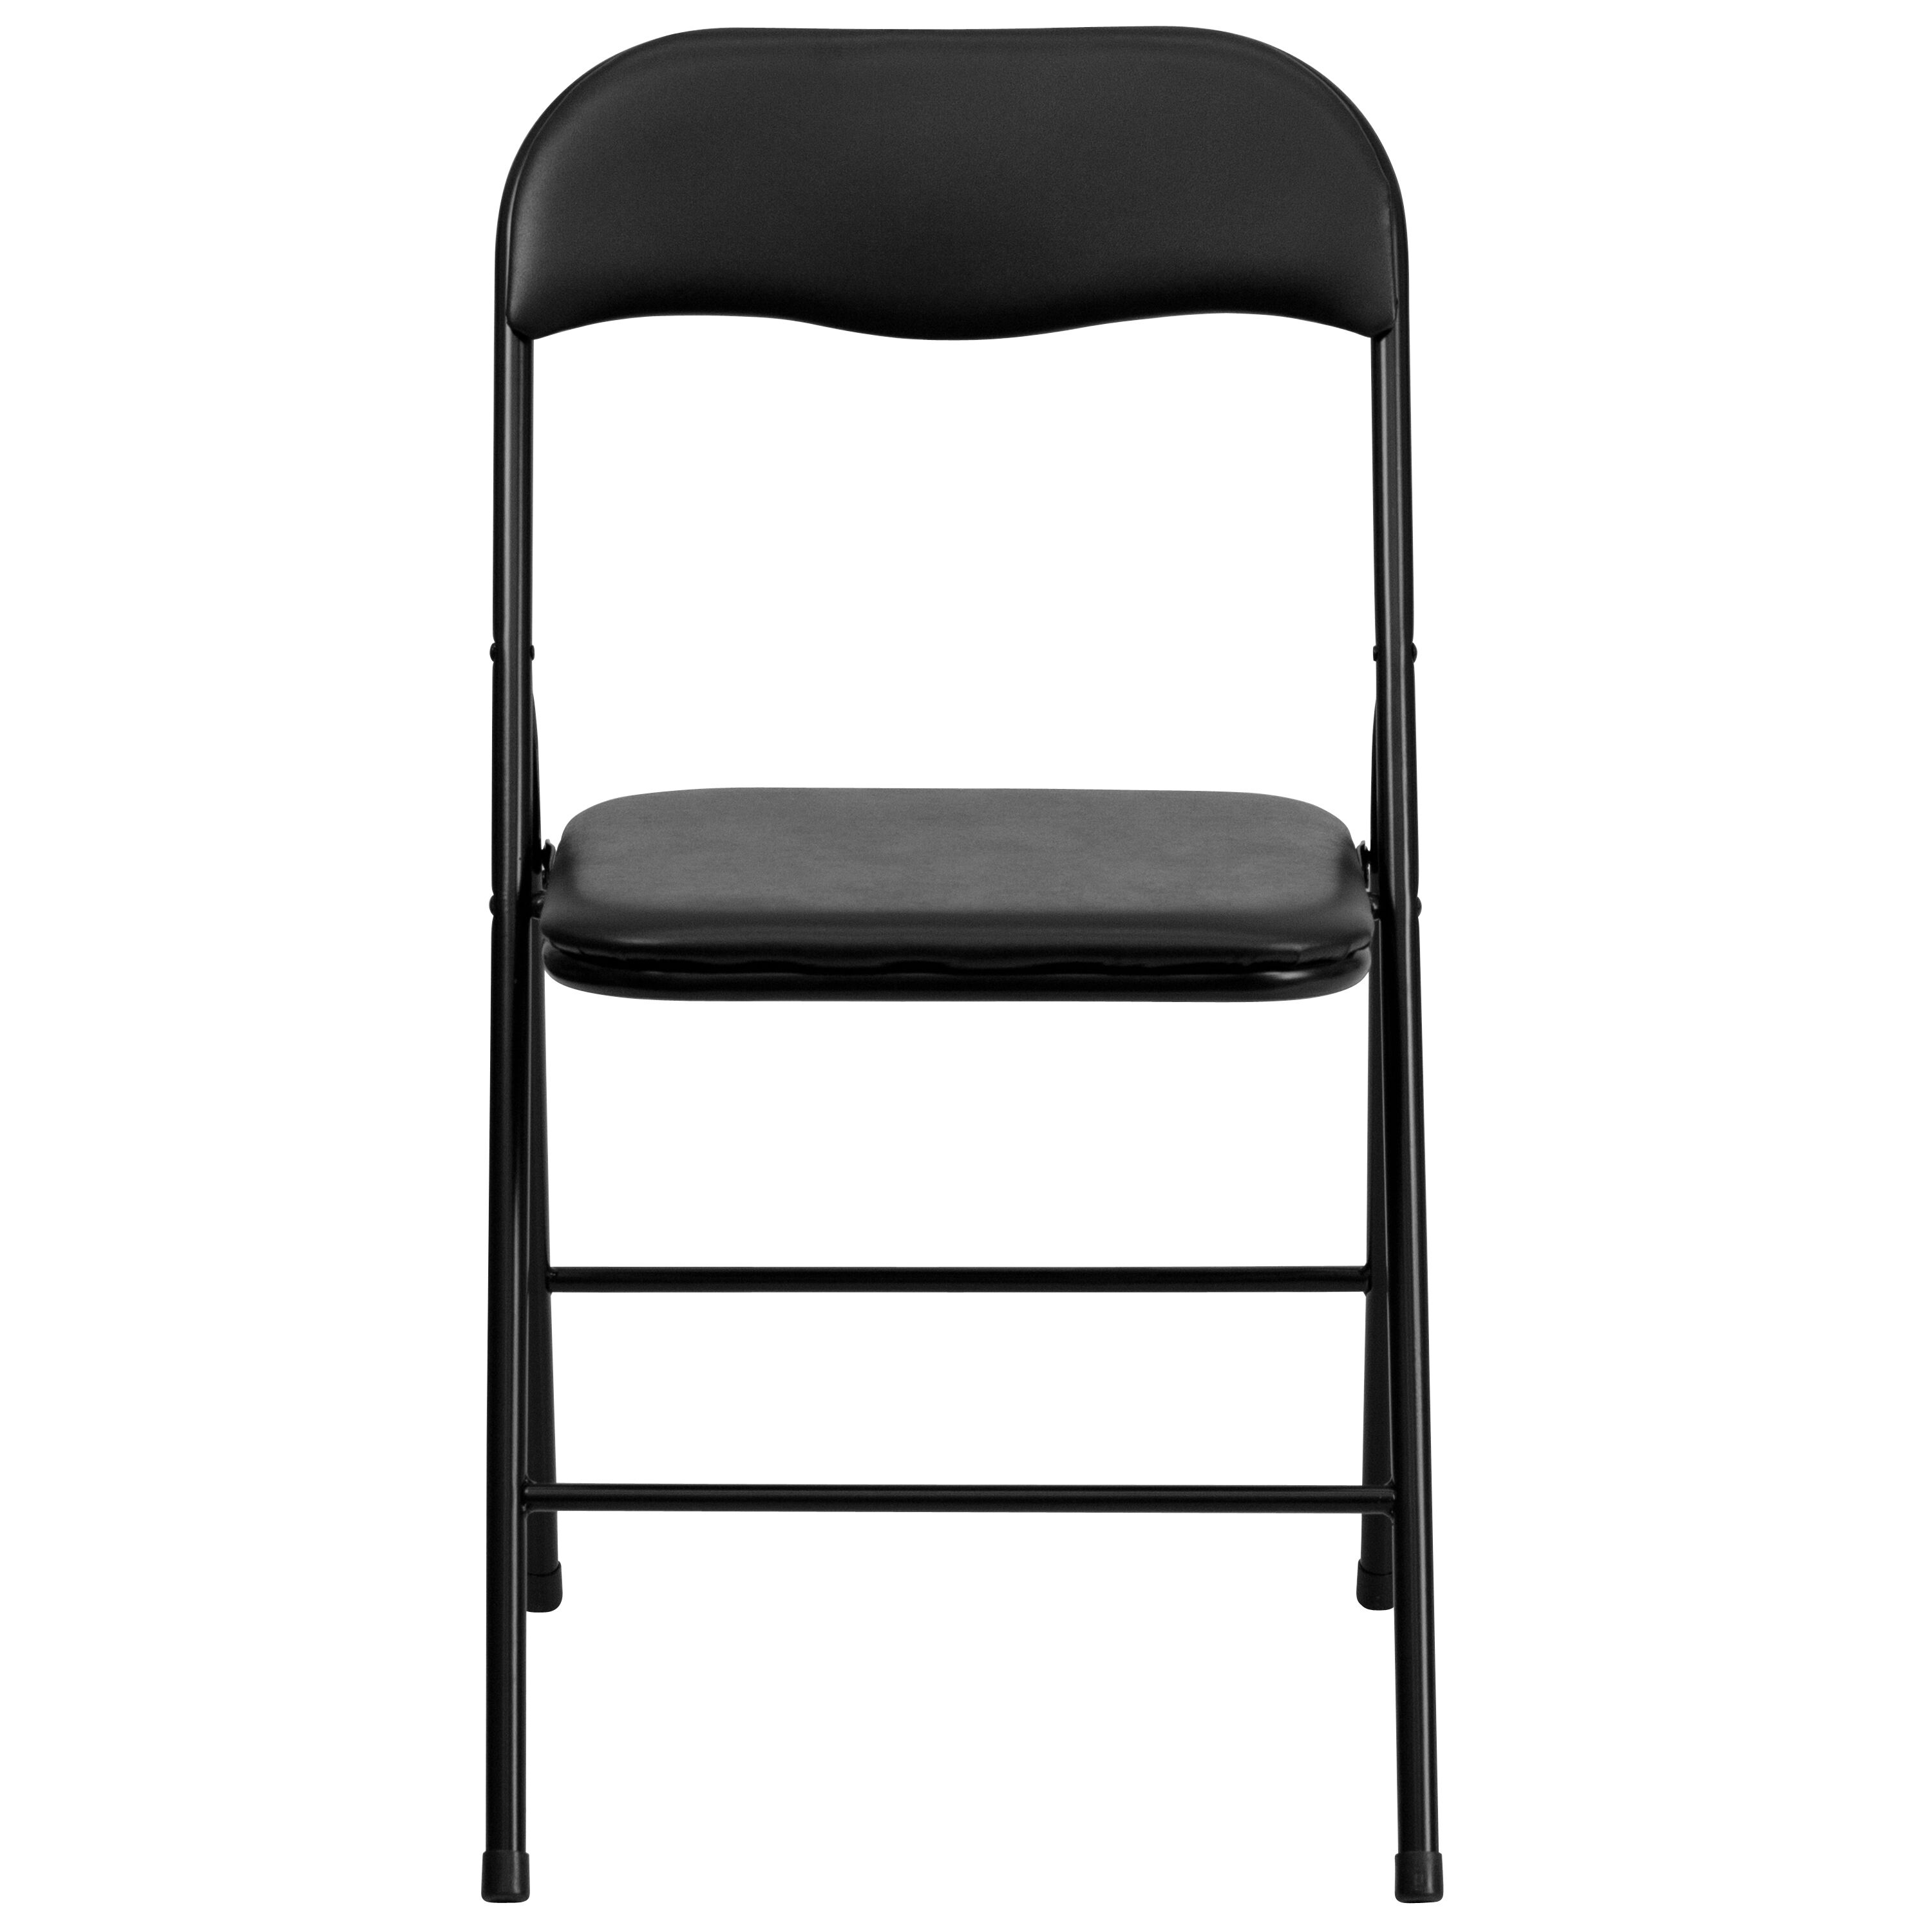 Marvelous Our 5 Piece Black Folding Card Table And Chair Set Is On Sale Now.